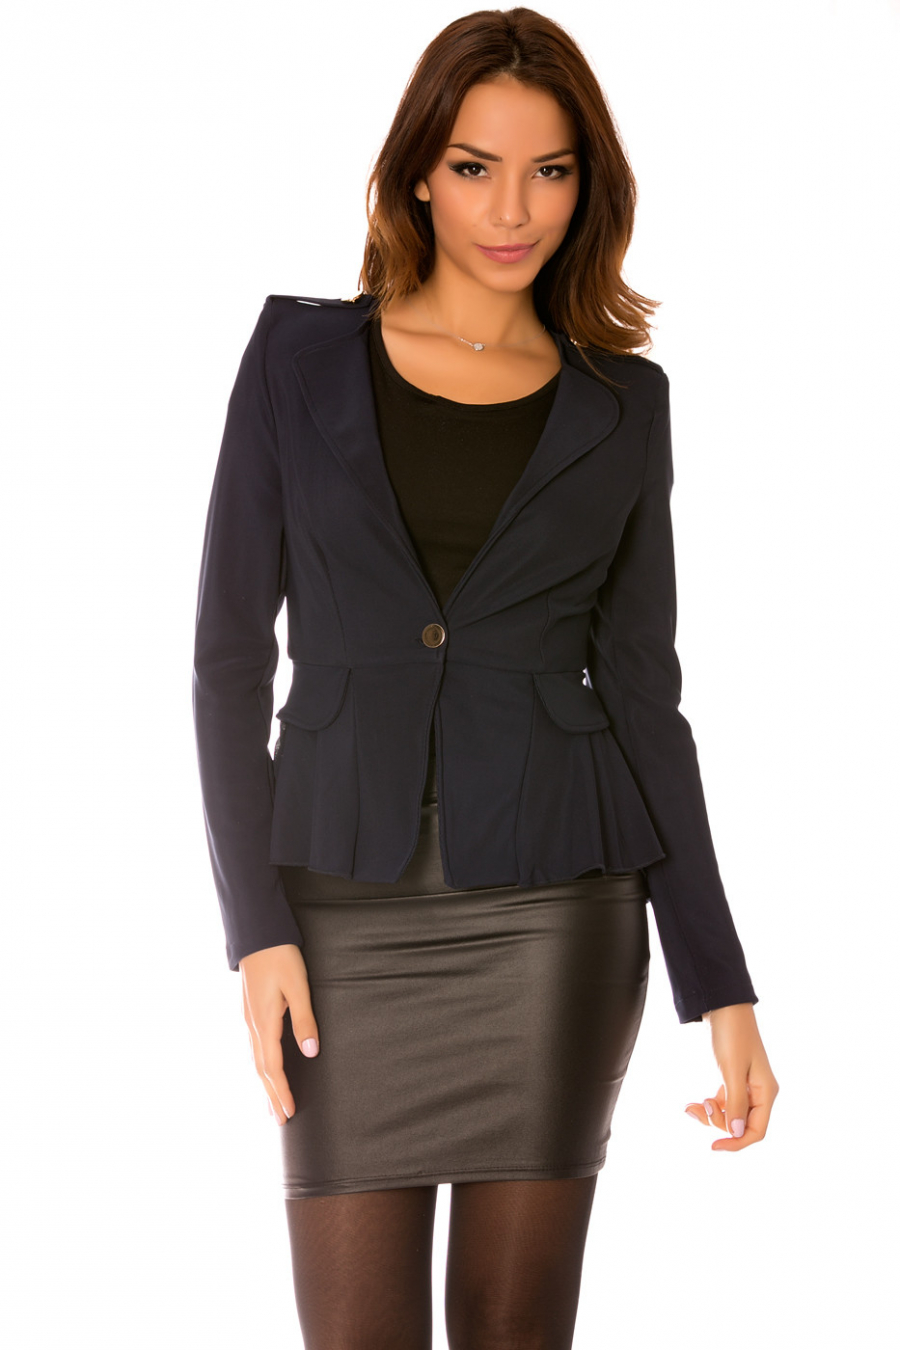 Black blazer jacket with bow at the back and flared veil at the bottom.